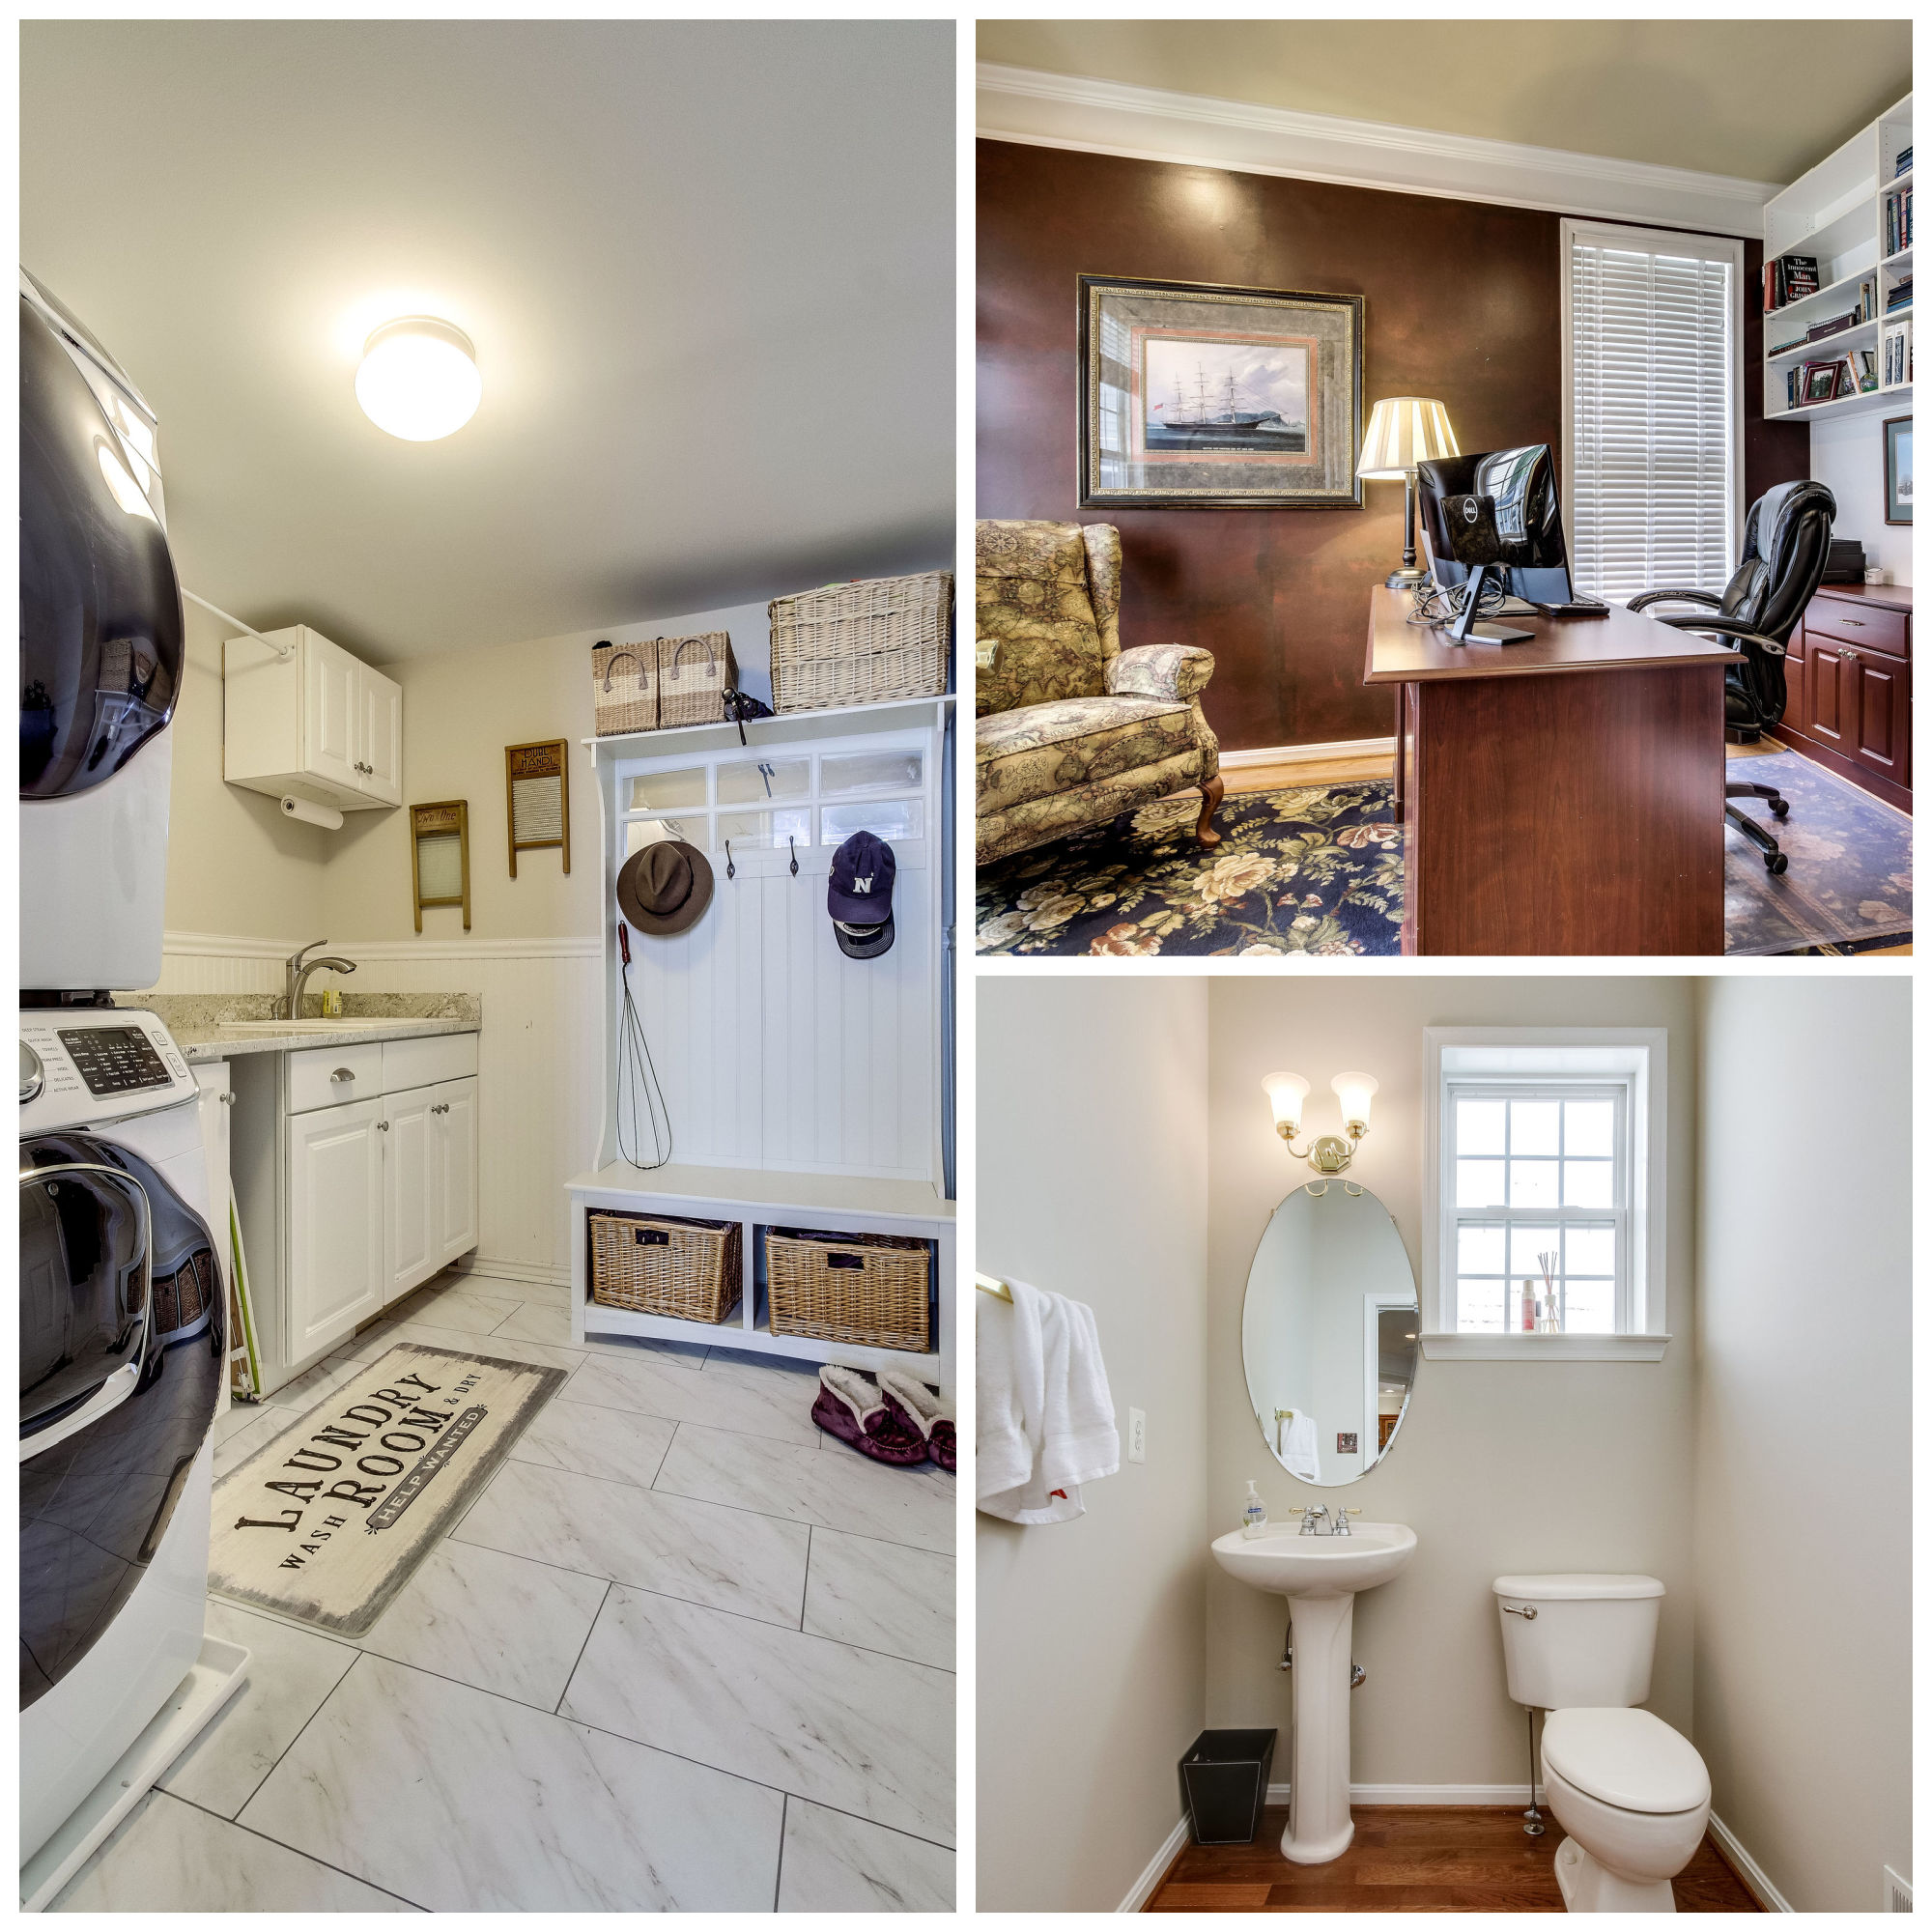 21930 Windover Dr, Broadlands- Office, Laundry, and Powder Room